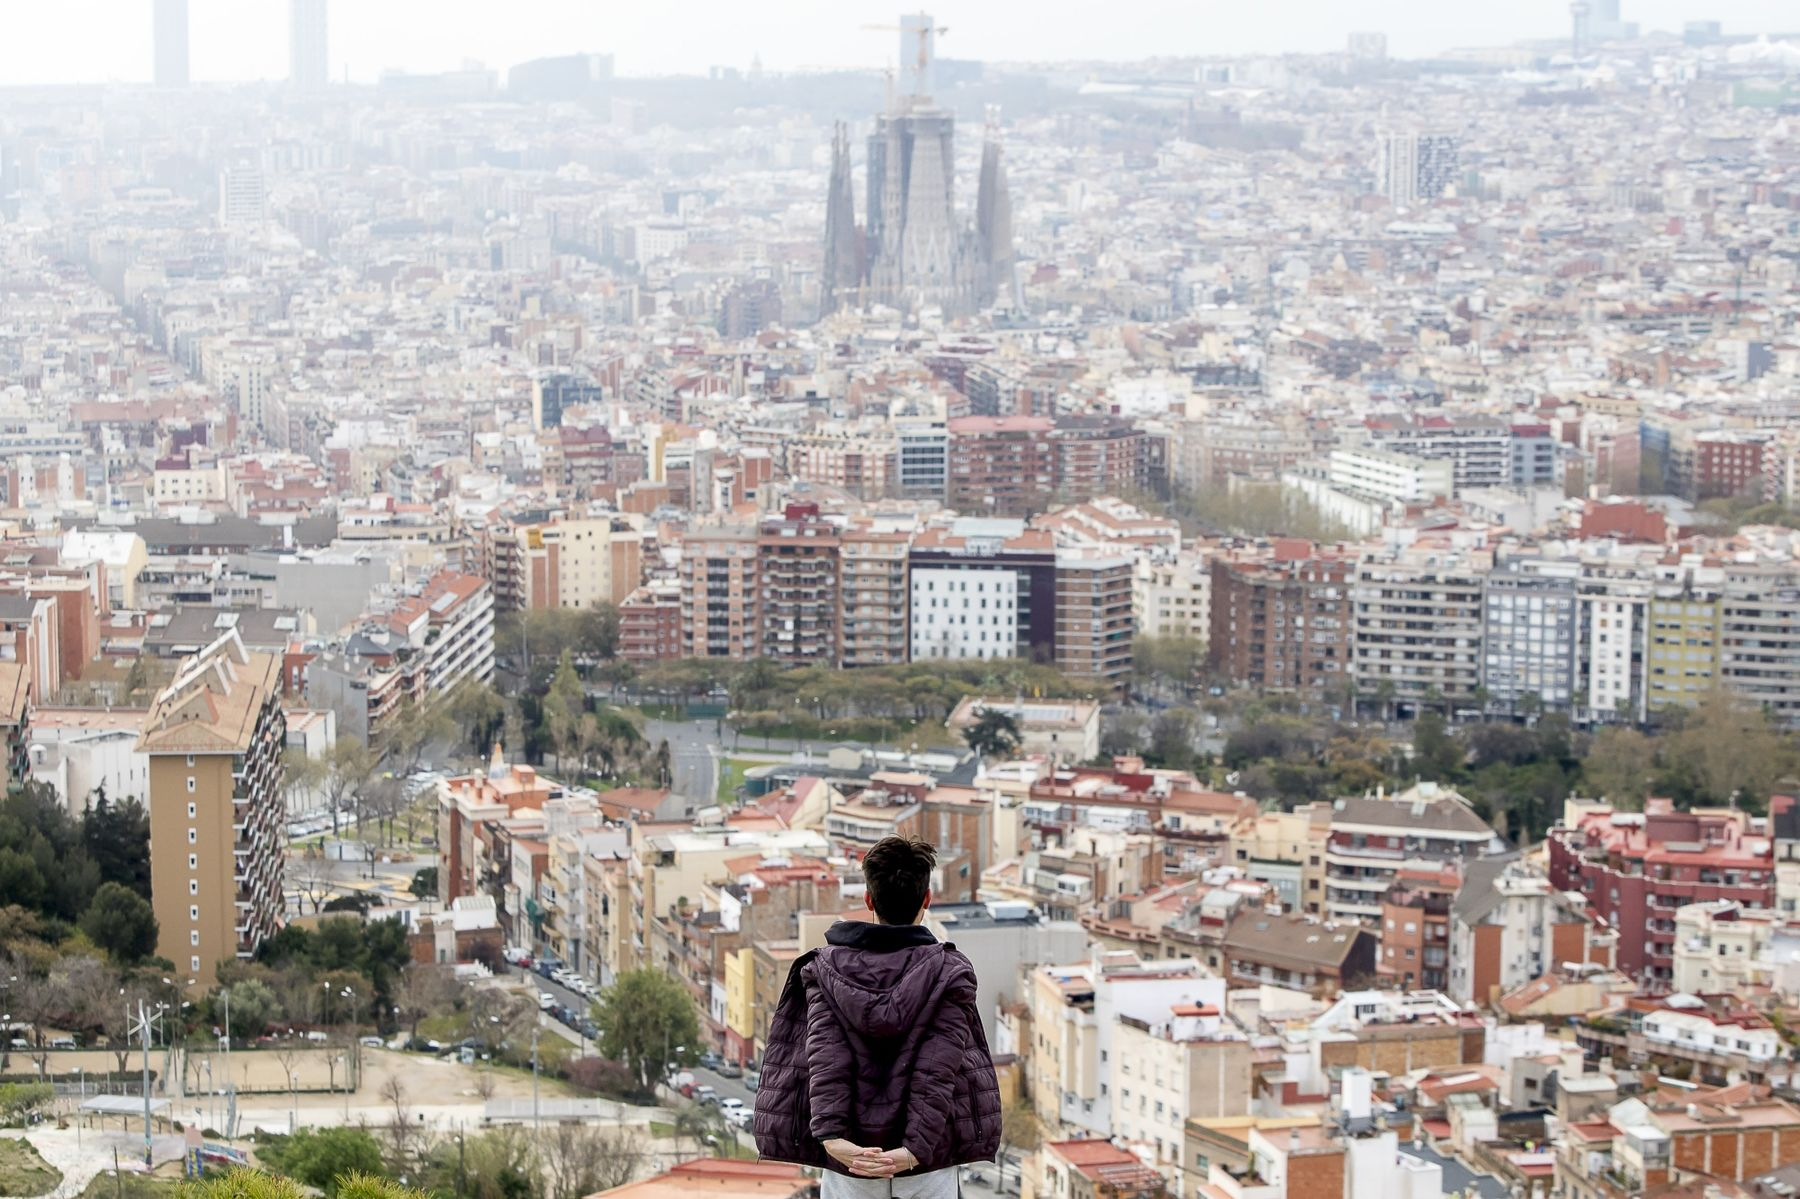 More than a quarter of Barcelona's children were unable to participate in online schooling during the pandemic because of a lack of devices or internet connections.